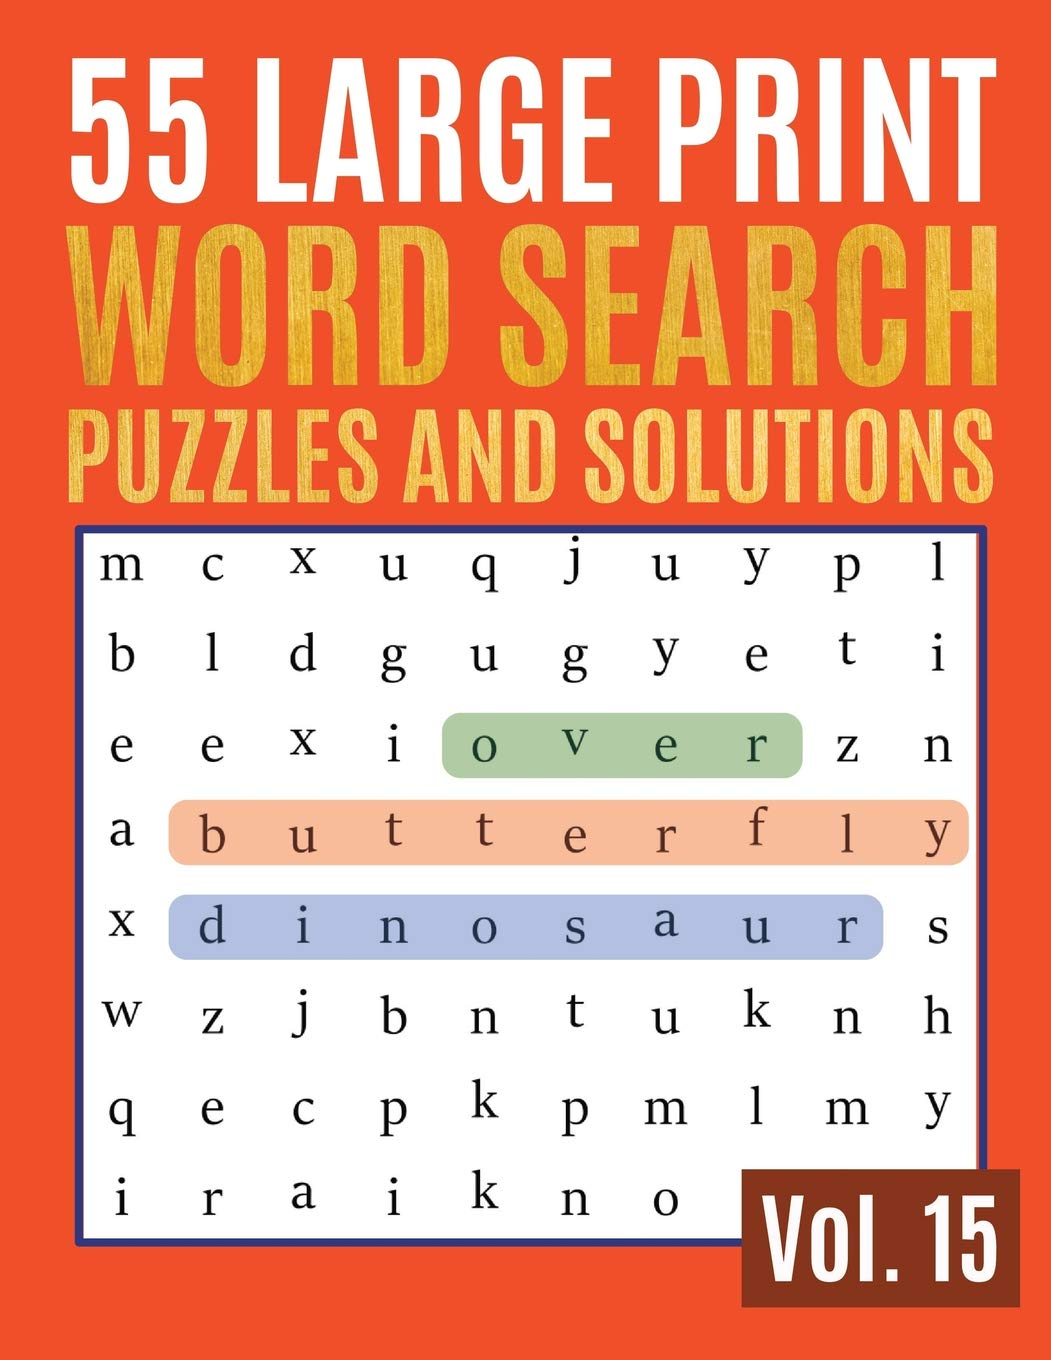 Image Of55 Large Print Word Search Puzzles And Solutions: Activity Book For Adults And Kids / Word Search Puzzle: Wordsearch Puzzl...